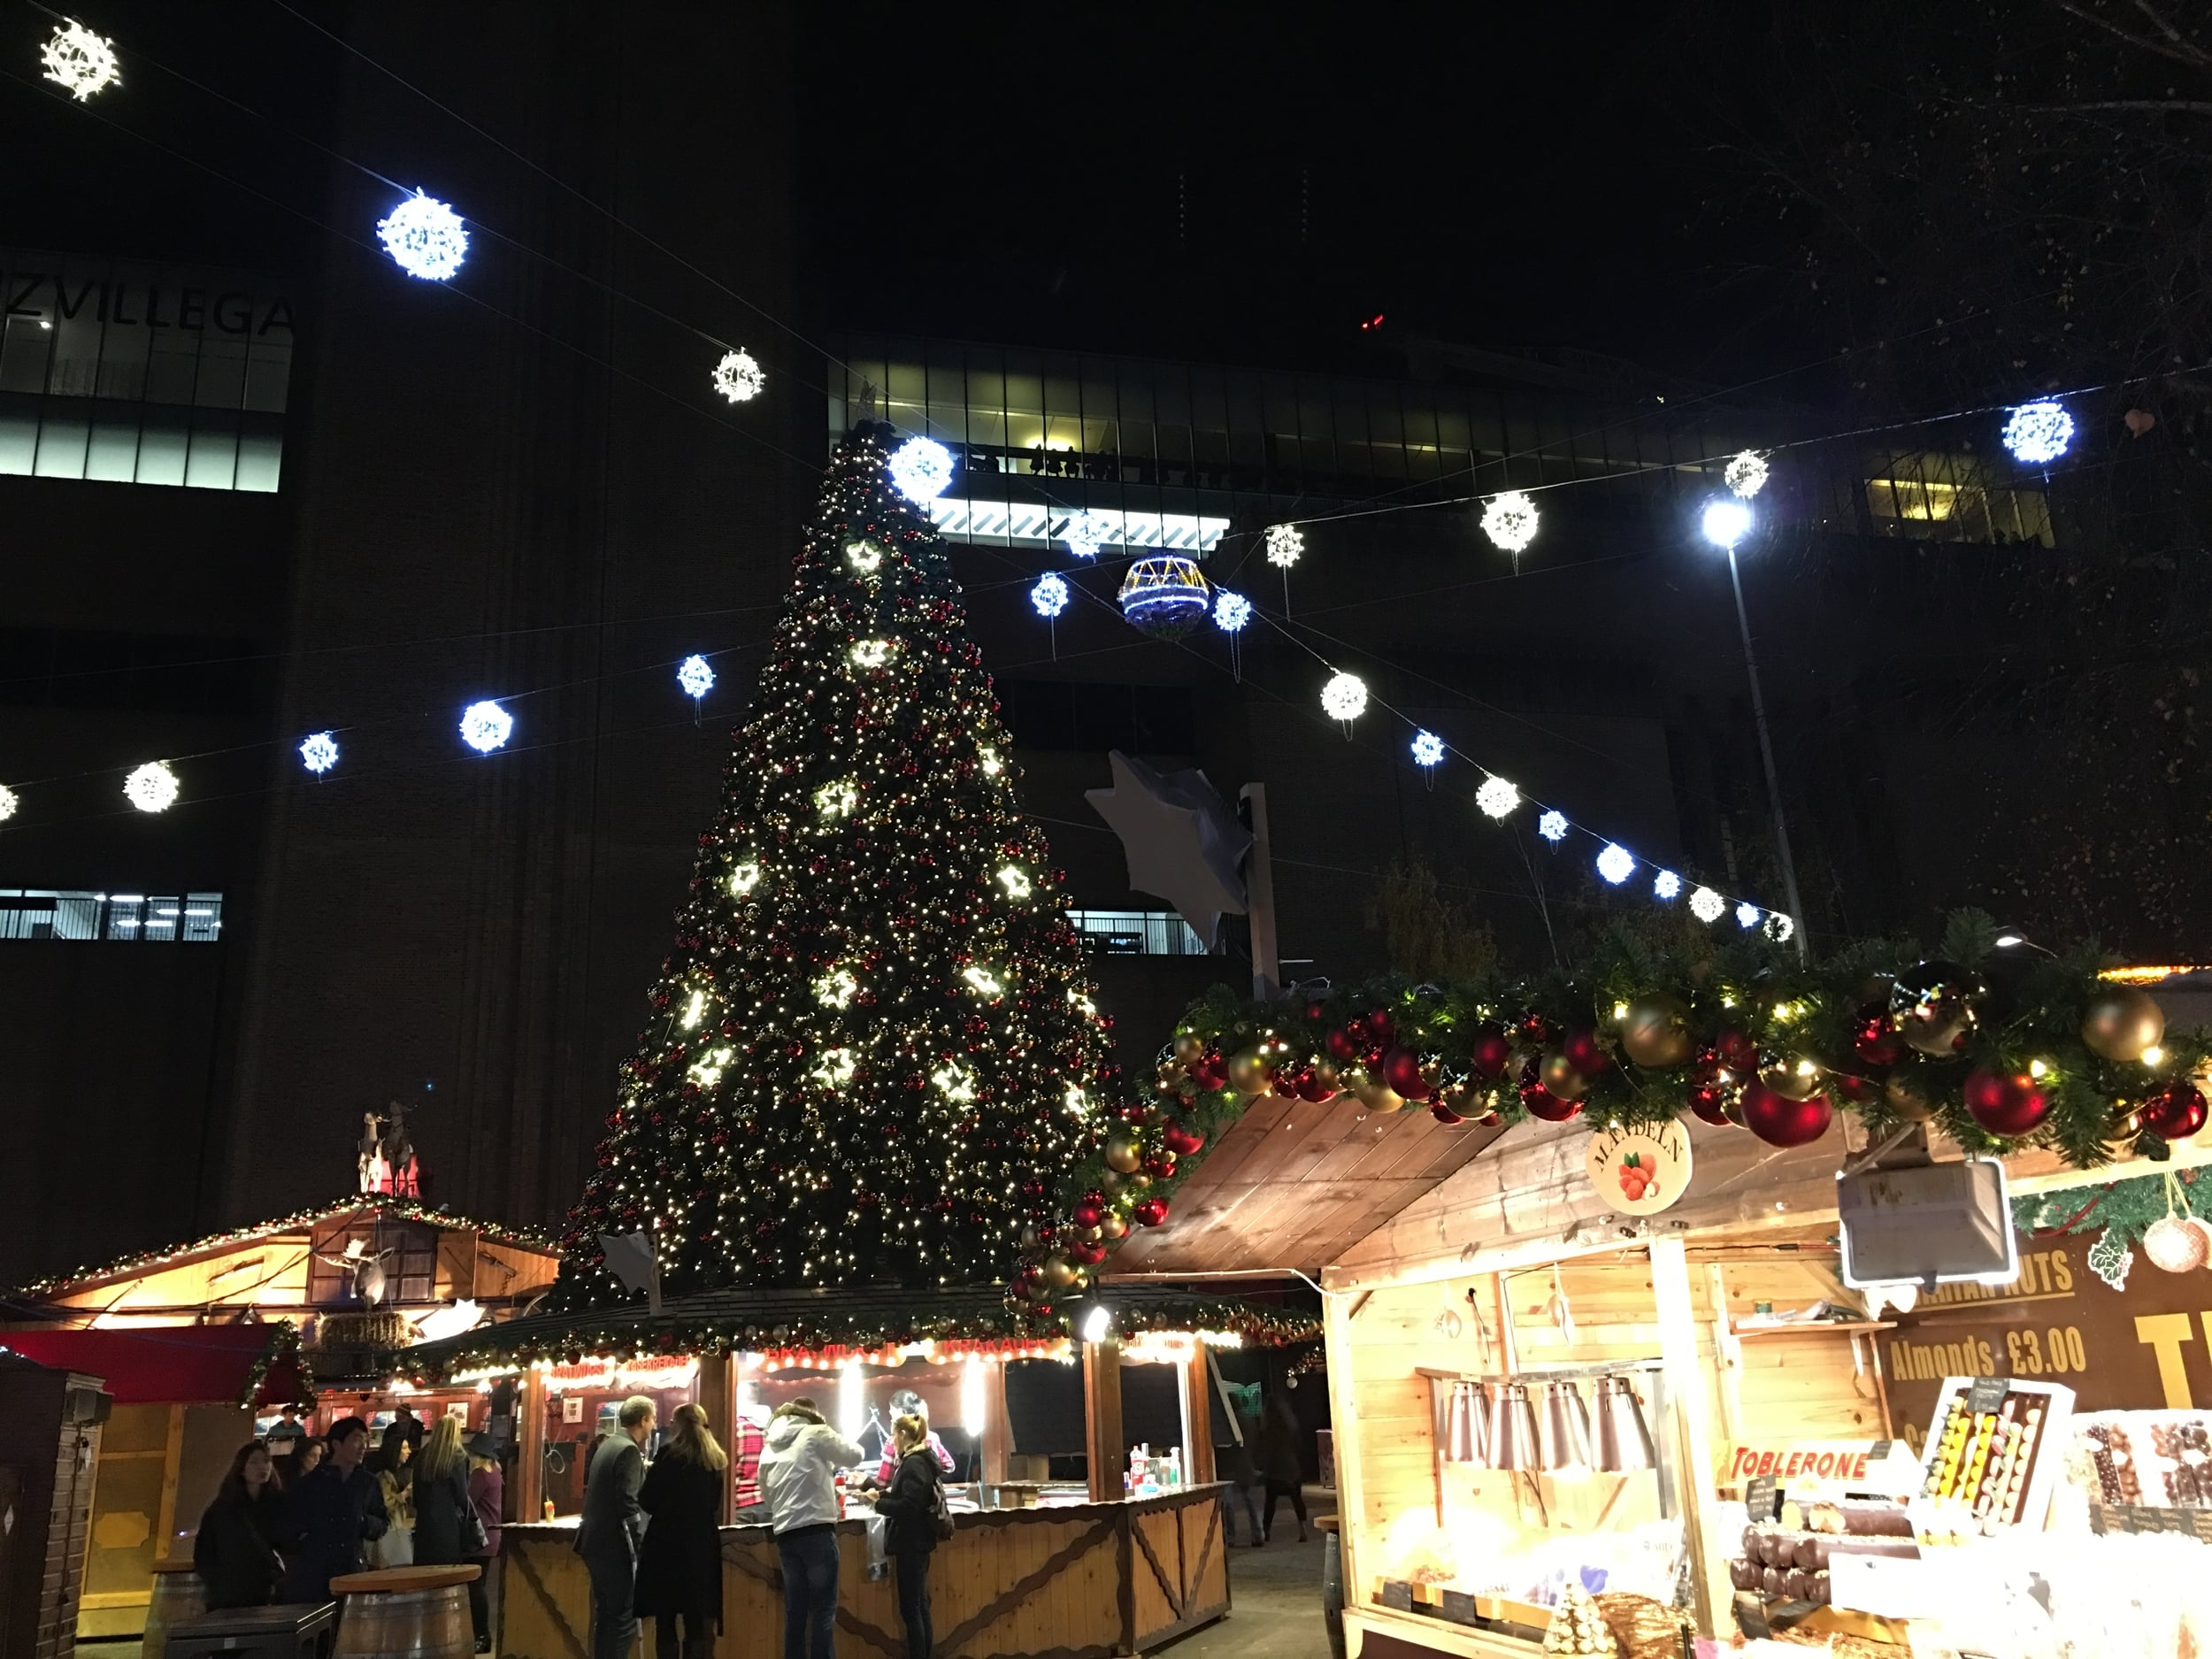 Christmas Market in South Bank